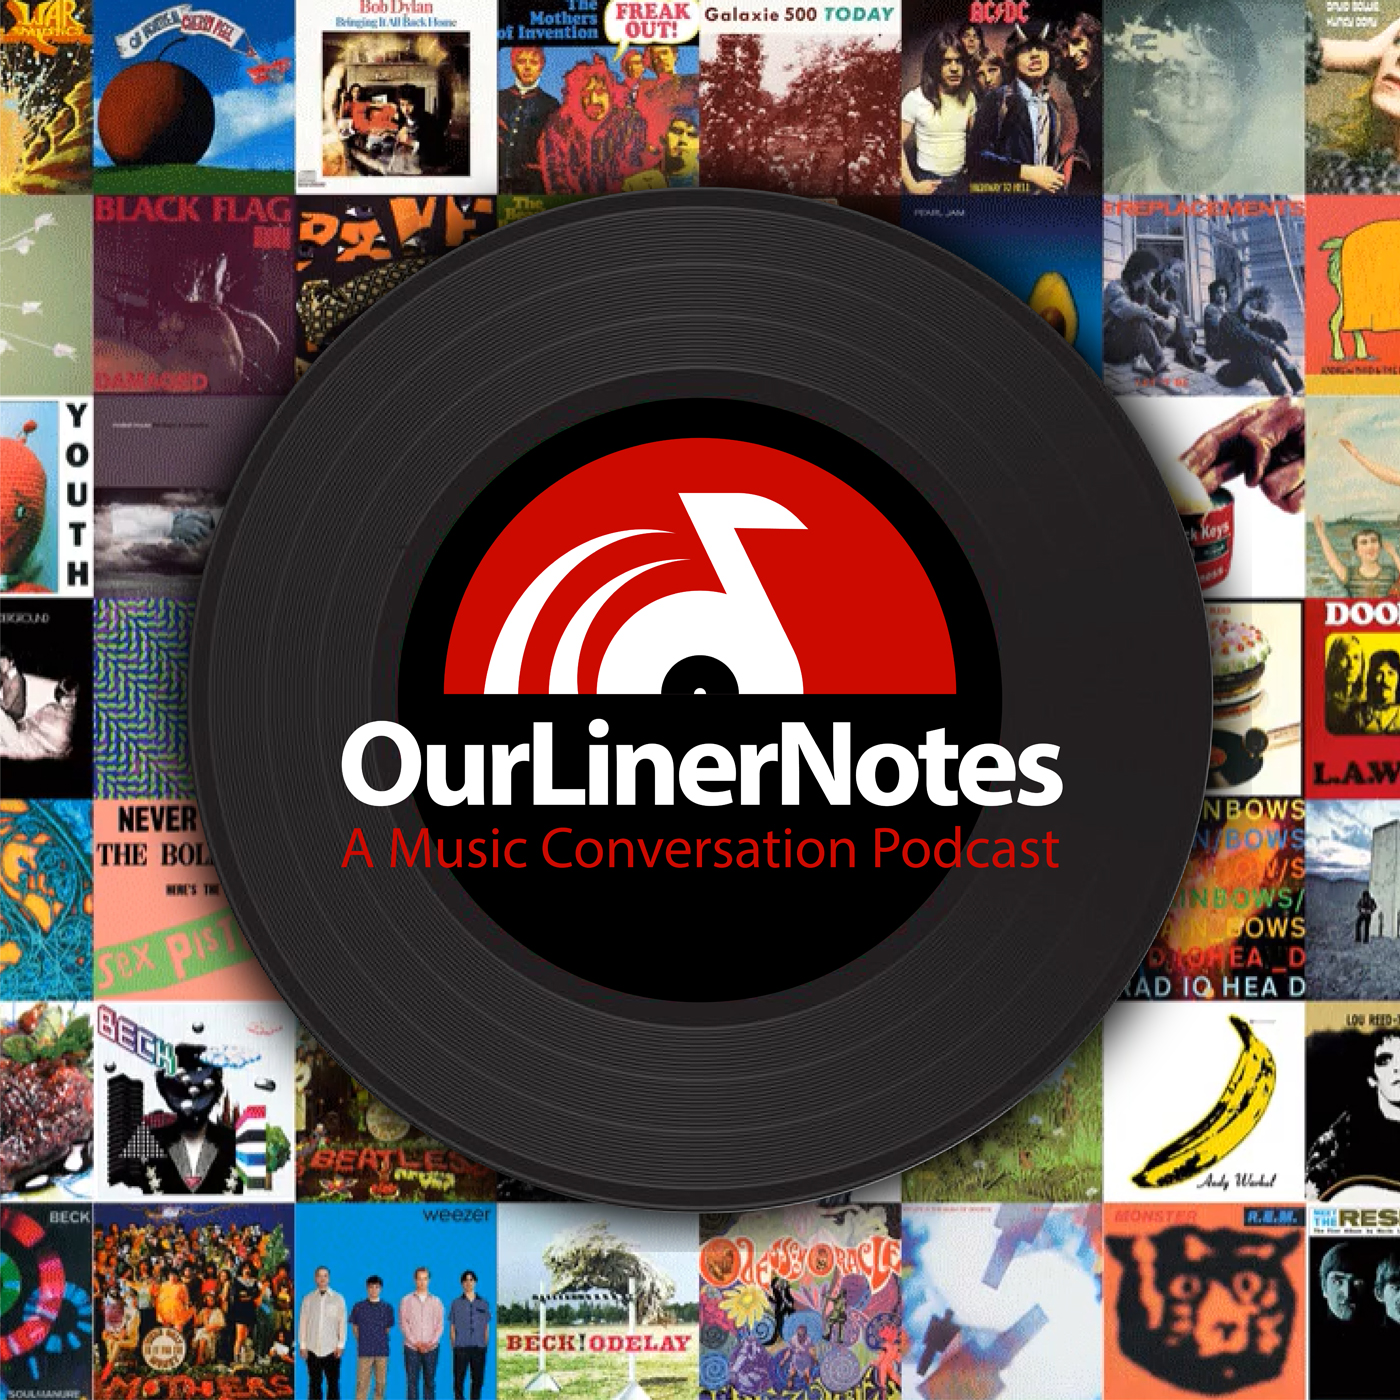 Our Liner Notes show art